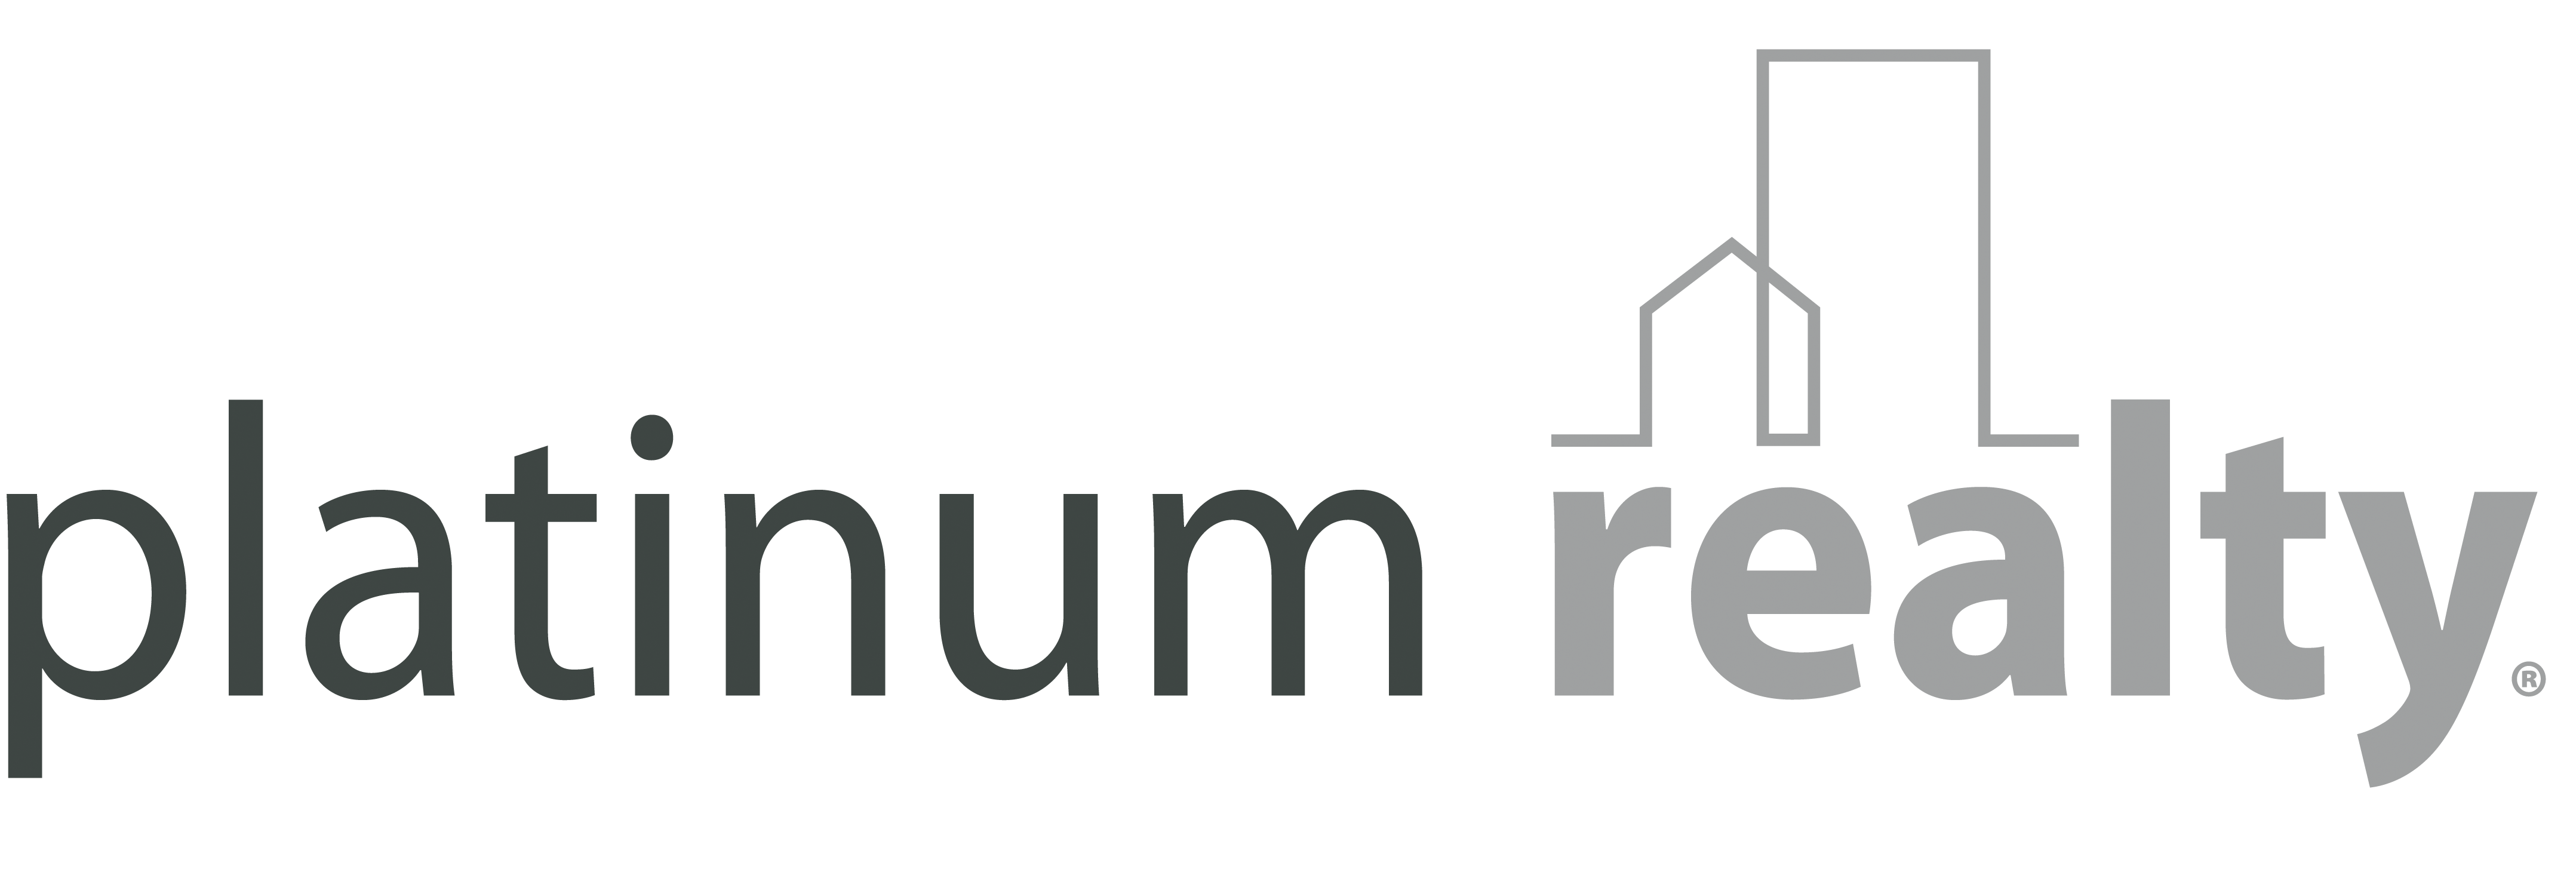 Optimus Homes Group at Platinum Realty logo